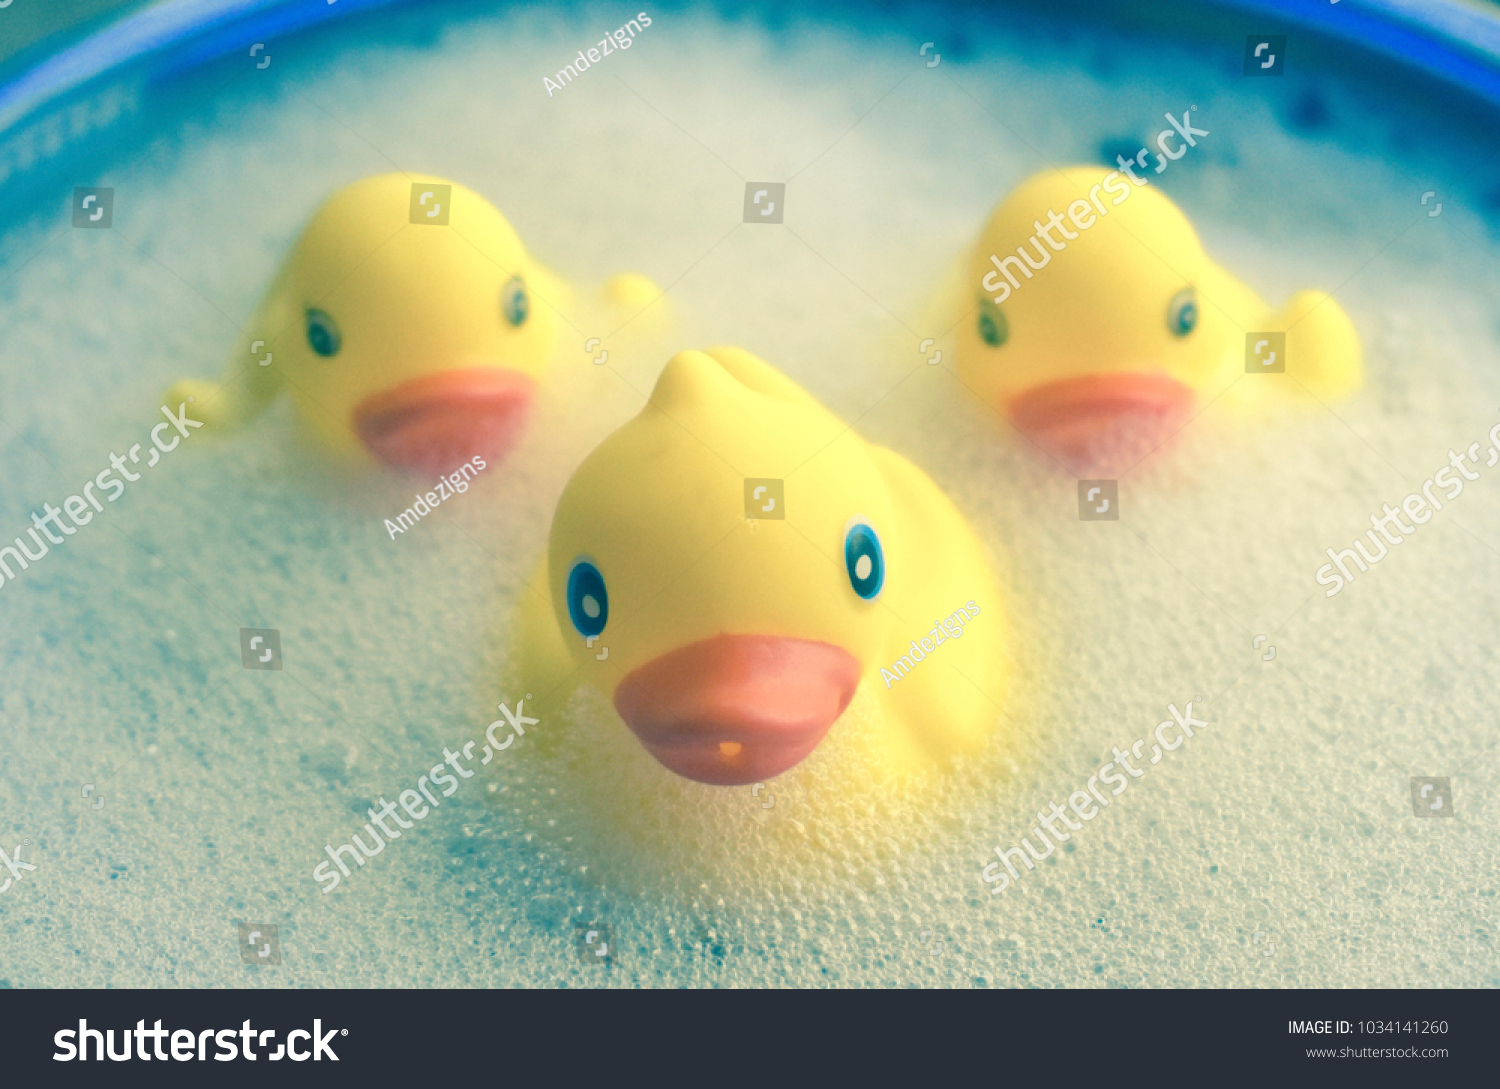 Little Rubber Duckies Bubble Bathtub Stock Photo (Safe to Use ...